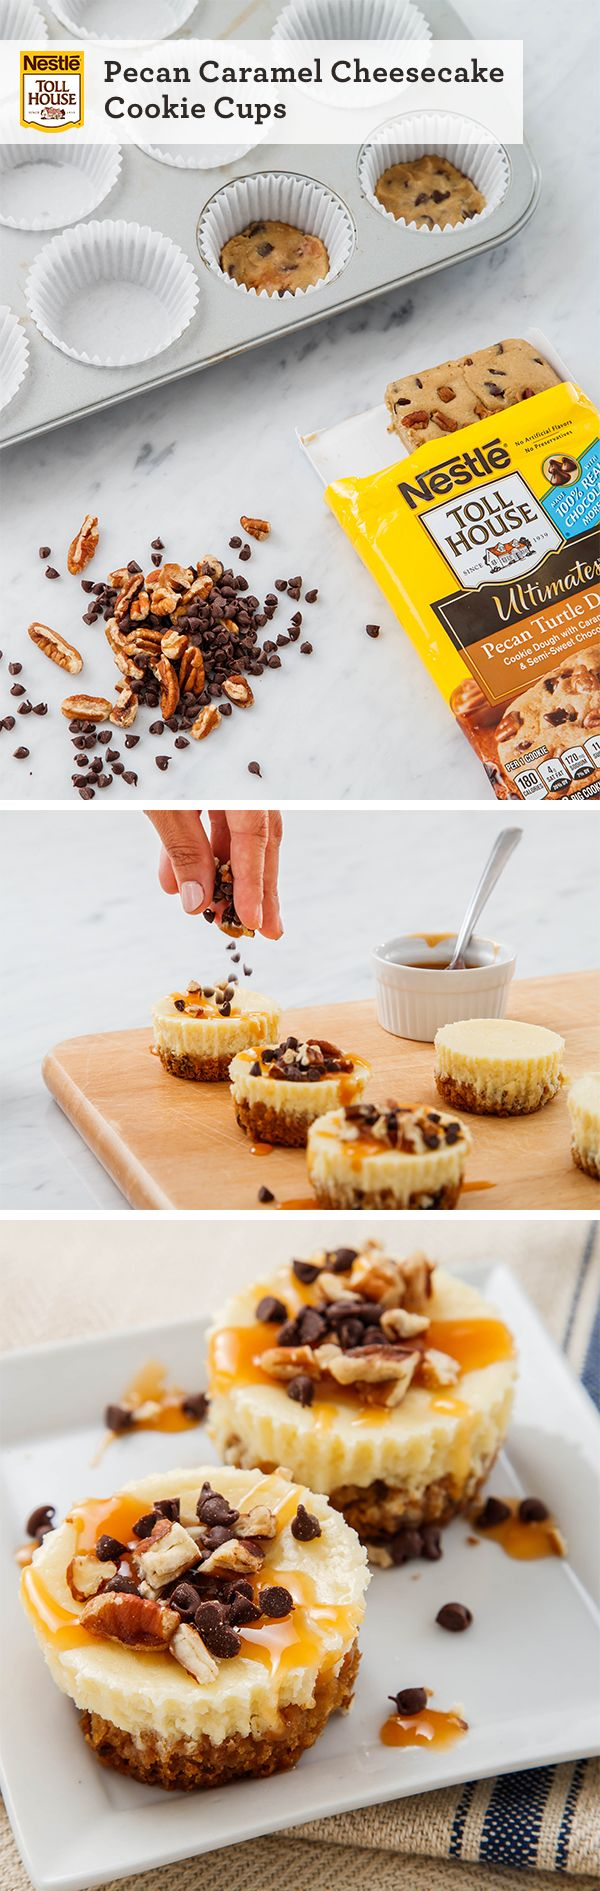 Pecan Caramel Cheesecake Cookie Cups will add a fun, and tasty spin to your Thanksgiving table. Baked Pecan Turtle cookie dough, topped with cheesecake and sprinkled with mini chocolate chips, make for a delicious, bite-sized dessert.